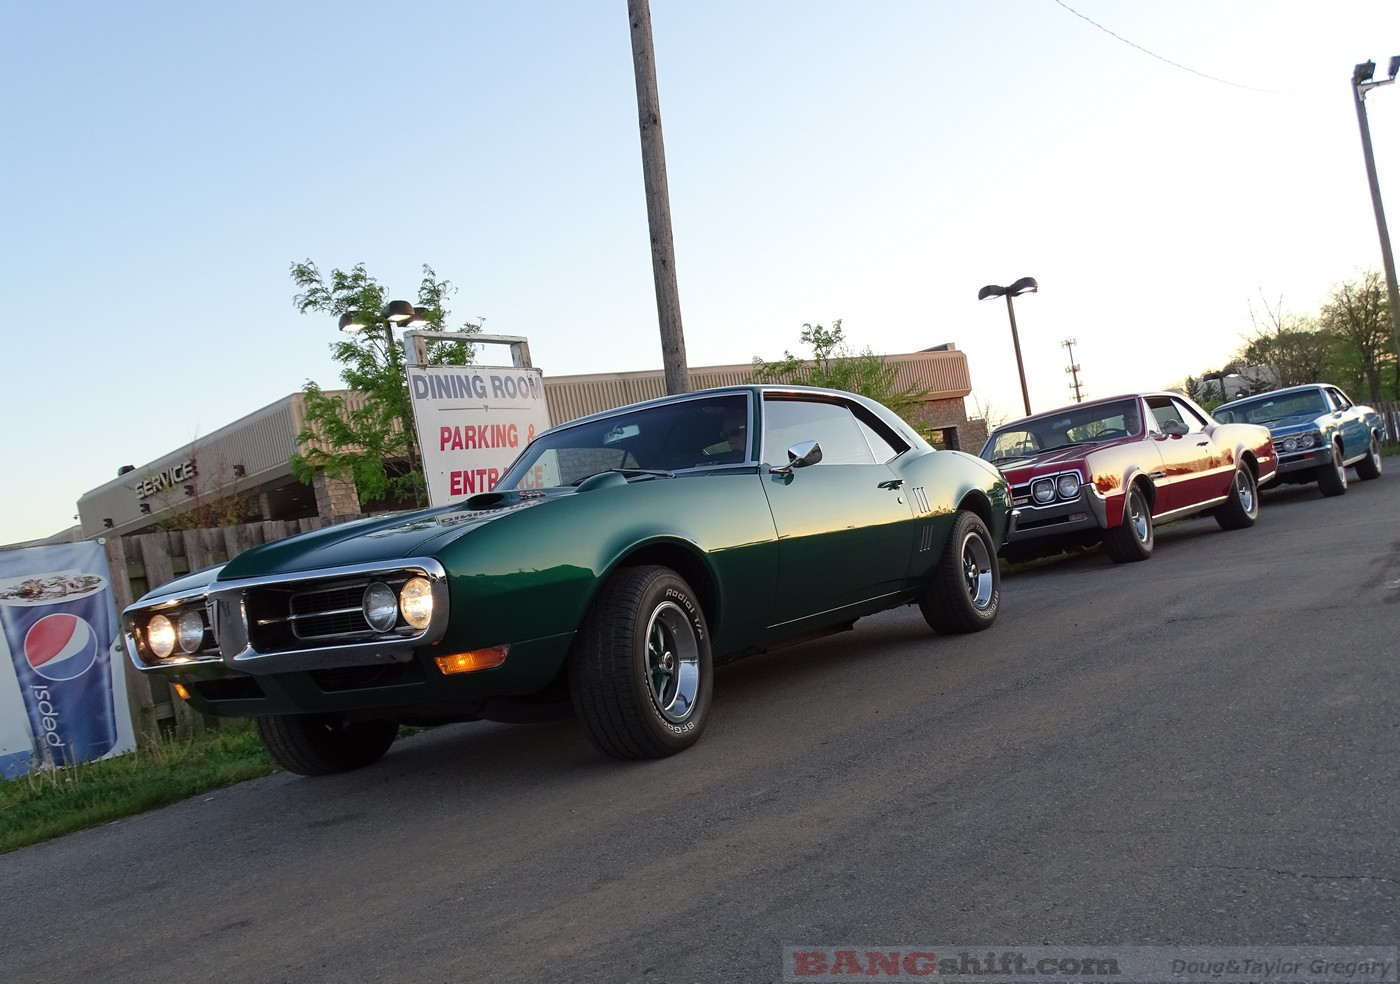 Cruise Coverage: The Parkette Drive-In Cruise Brought Out The Coolness!